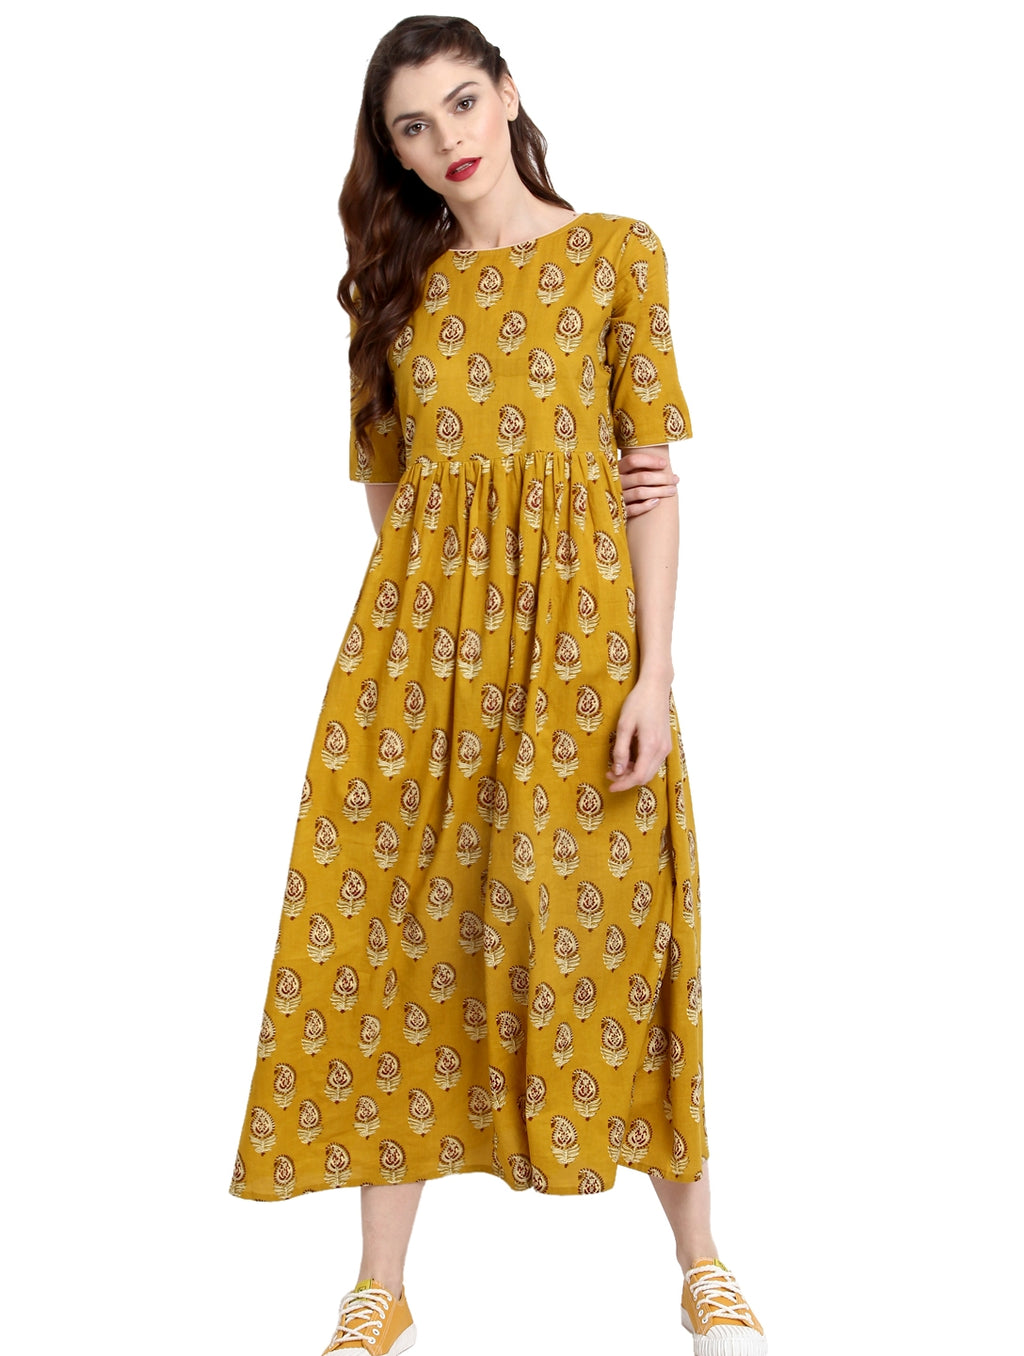 Mustard Yellow Color Cotton Readymade Party Wear Kurtis ( Sizes-36,38,40,42,44) Janasya Catlog SJ-10244